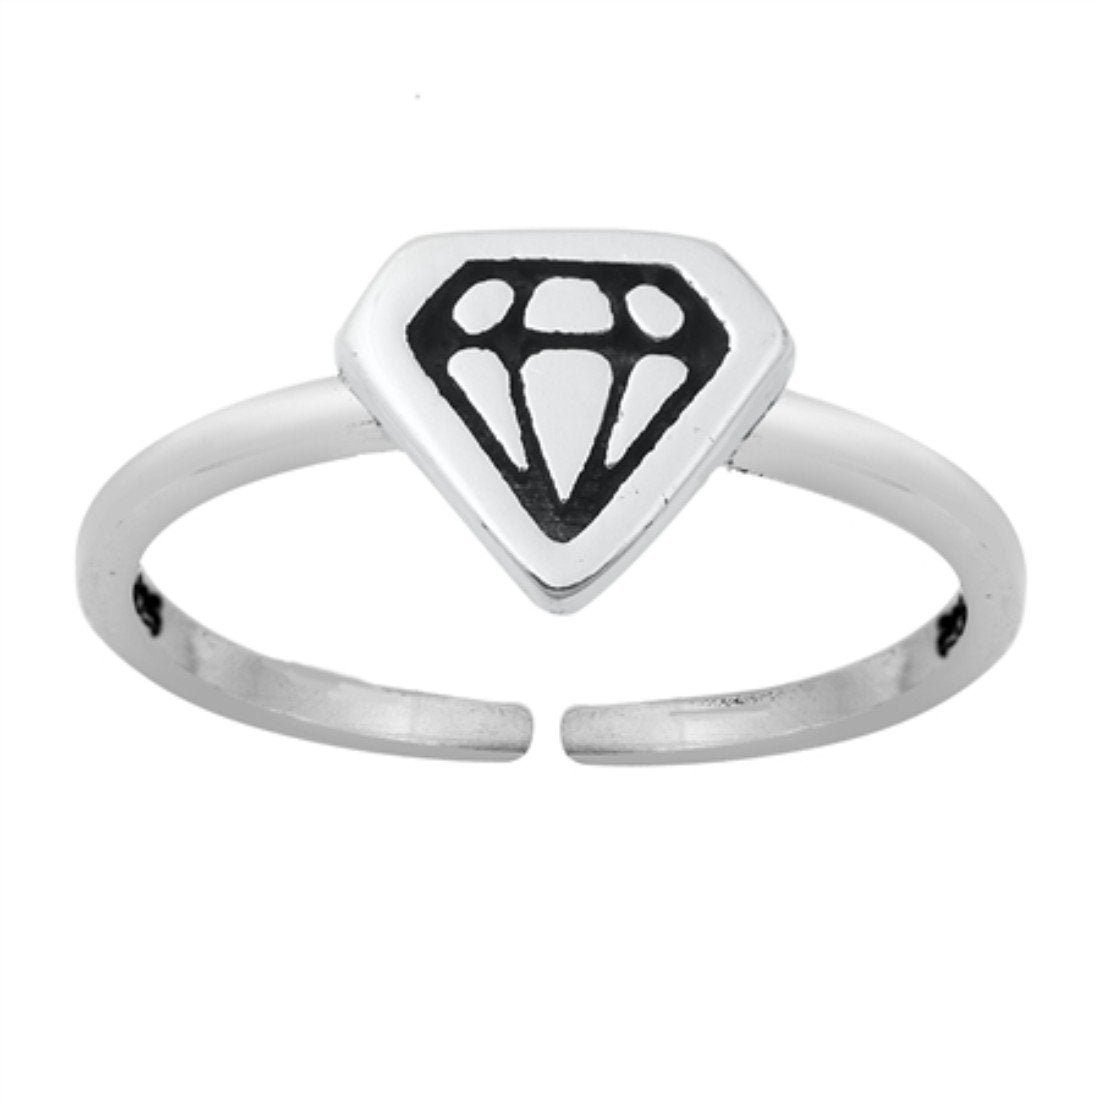 Hammered DC Style Adjustable Toe Ring 925 Sterling Silver(6.5mm)